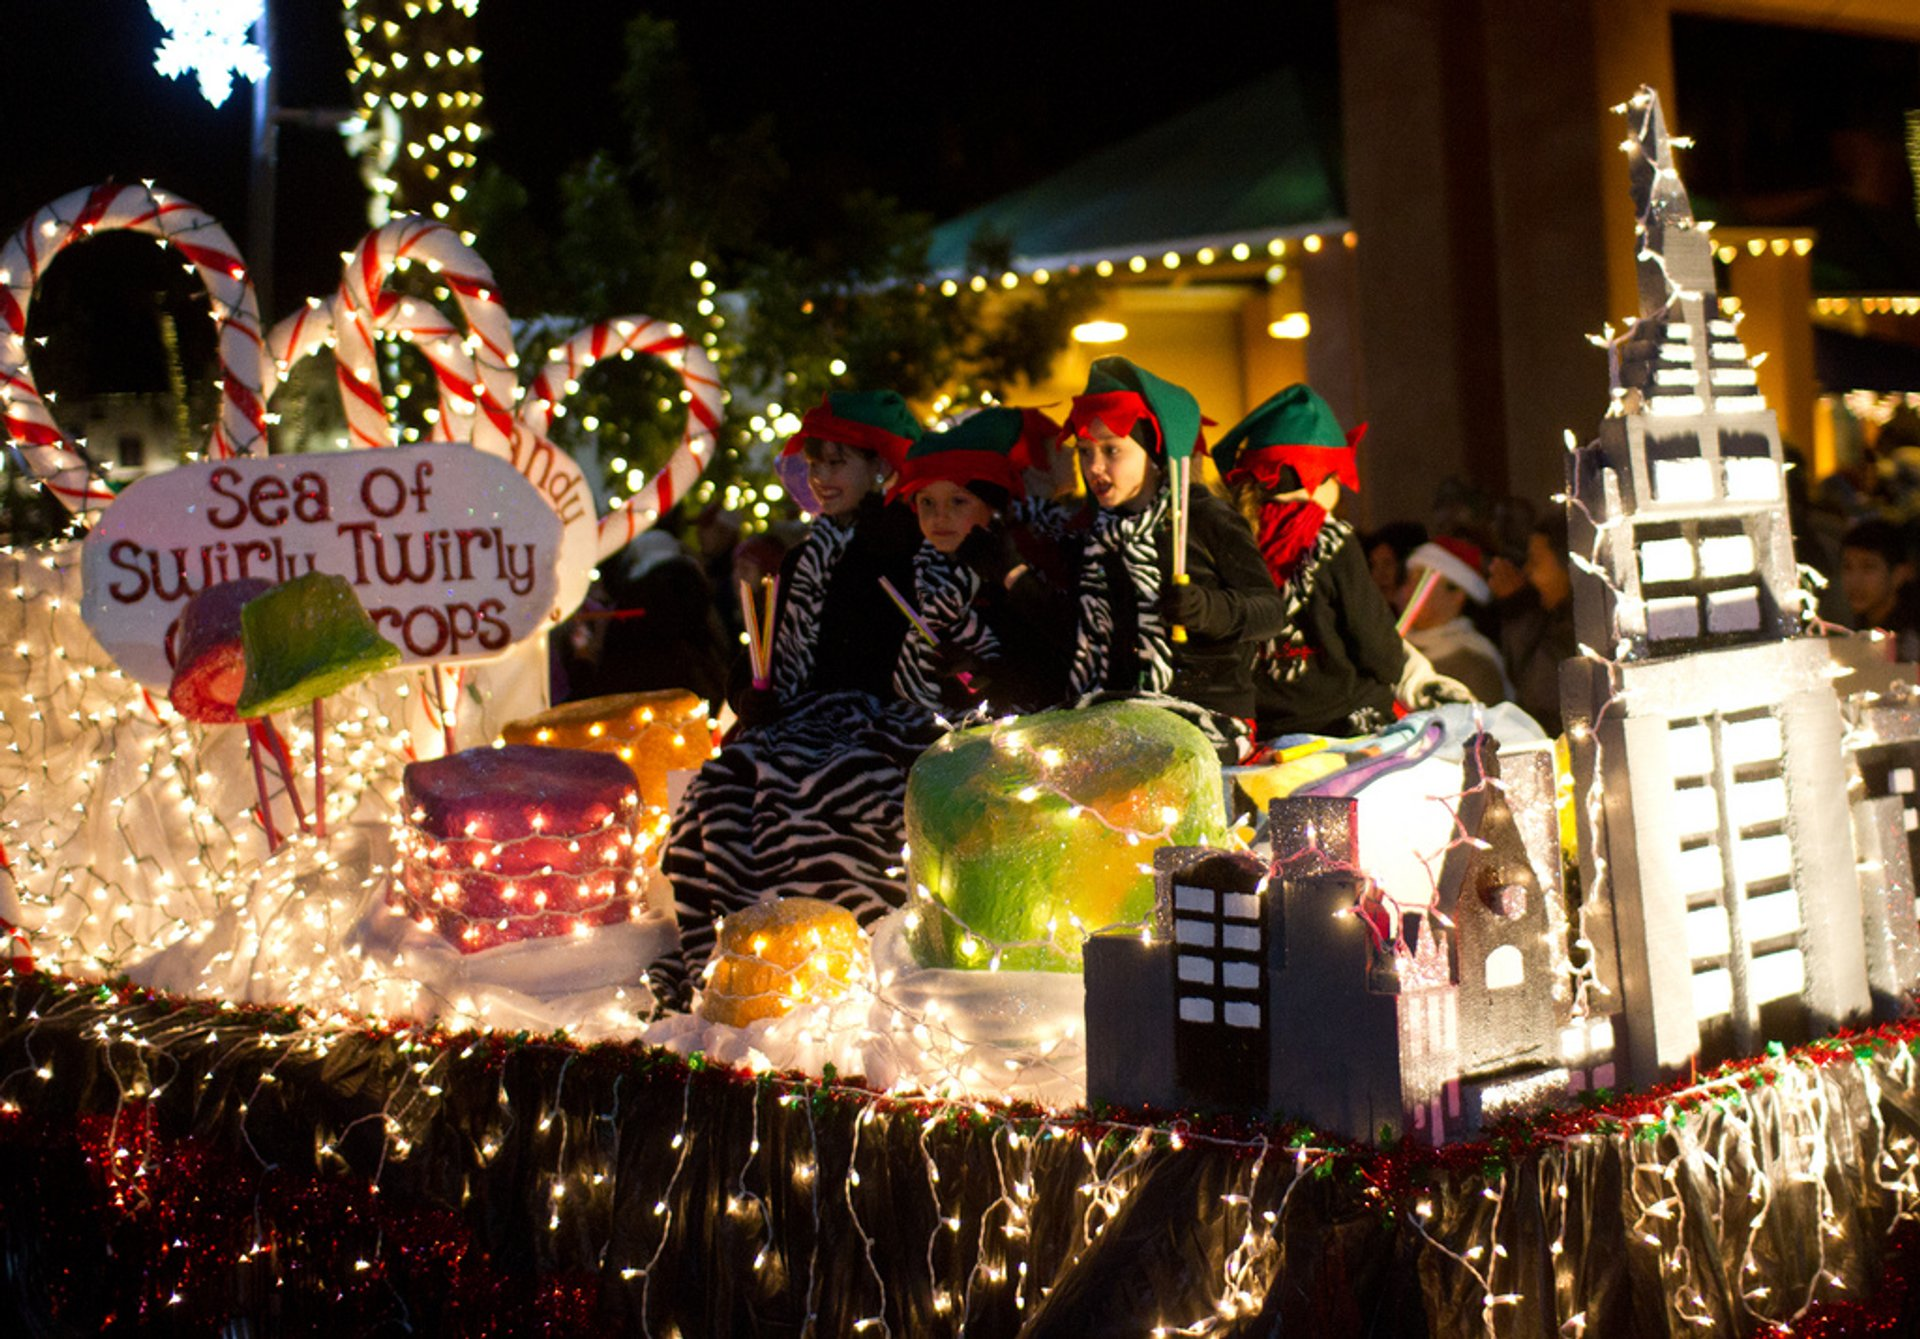 Christmas Activities In Chandler Az 2020 Chandler Parade of Lights 2020 in Arizona   Dates